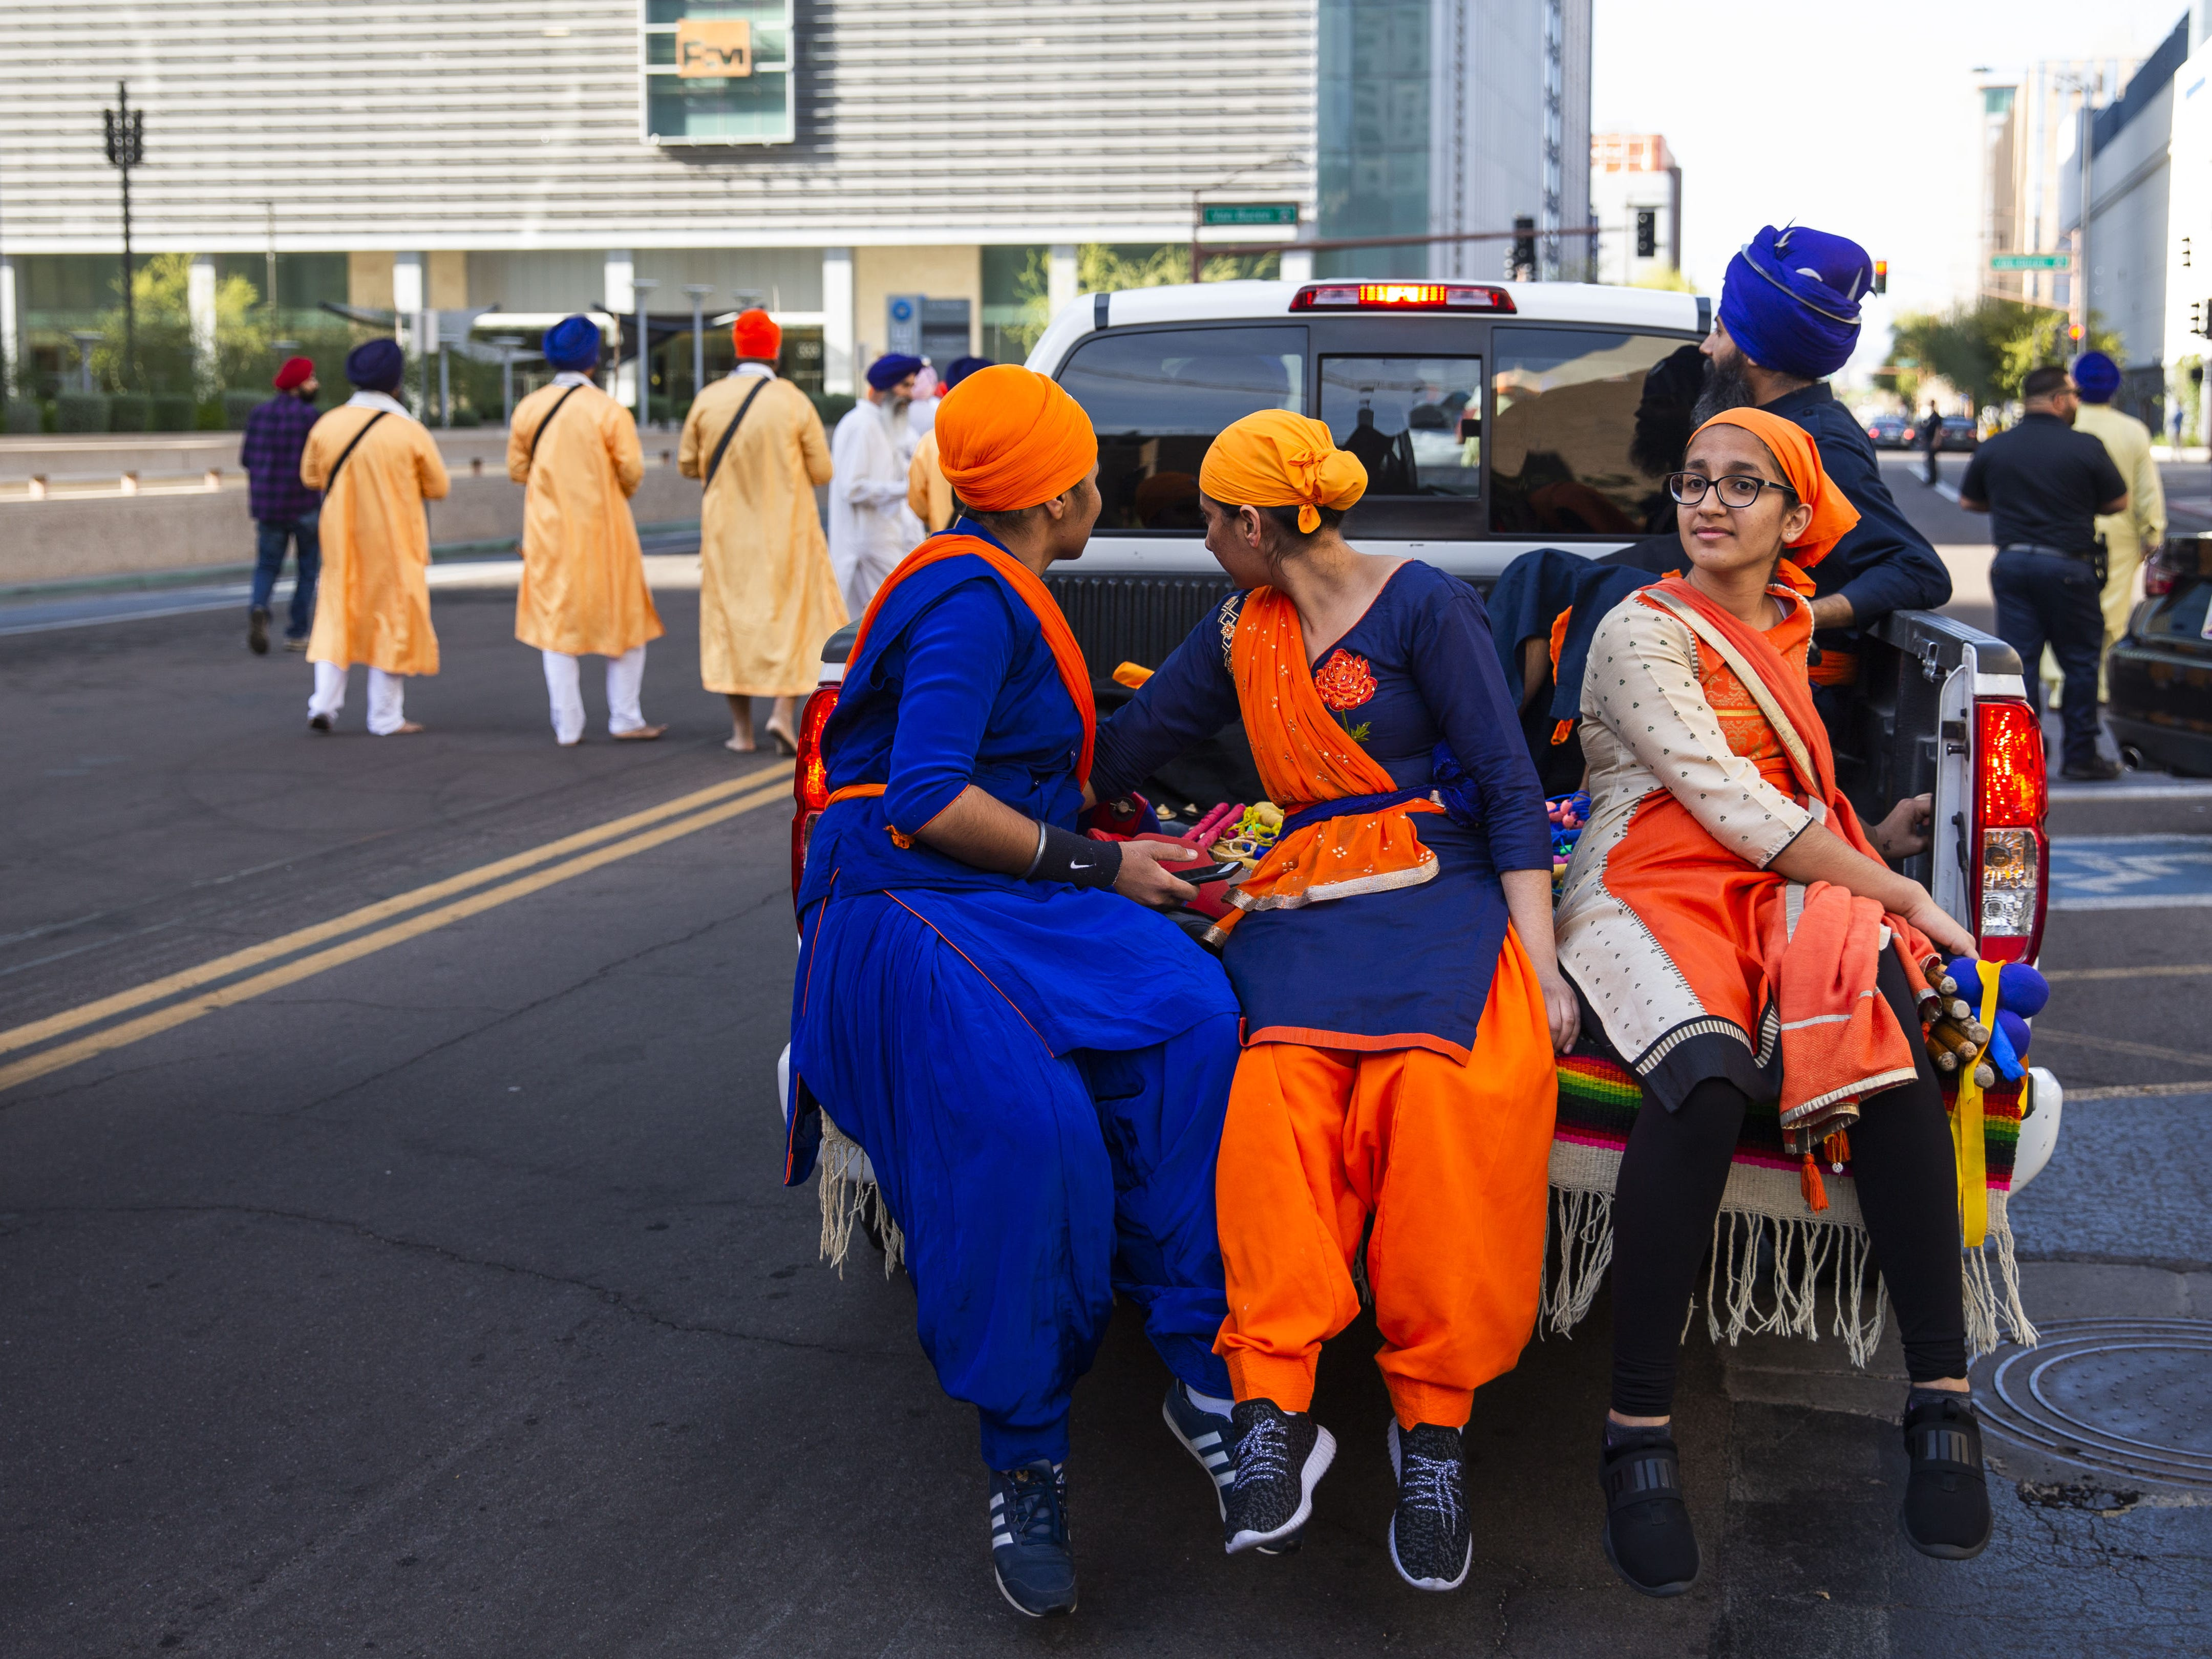 From left, Rupinder Kaur, Jasprit Kaur and Ashmin Kaur ride in the back of a pick-up truck with the Nagar Kirtan procession through downtown Phoenix on March 24, 2019.